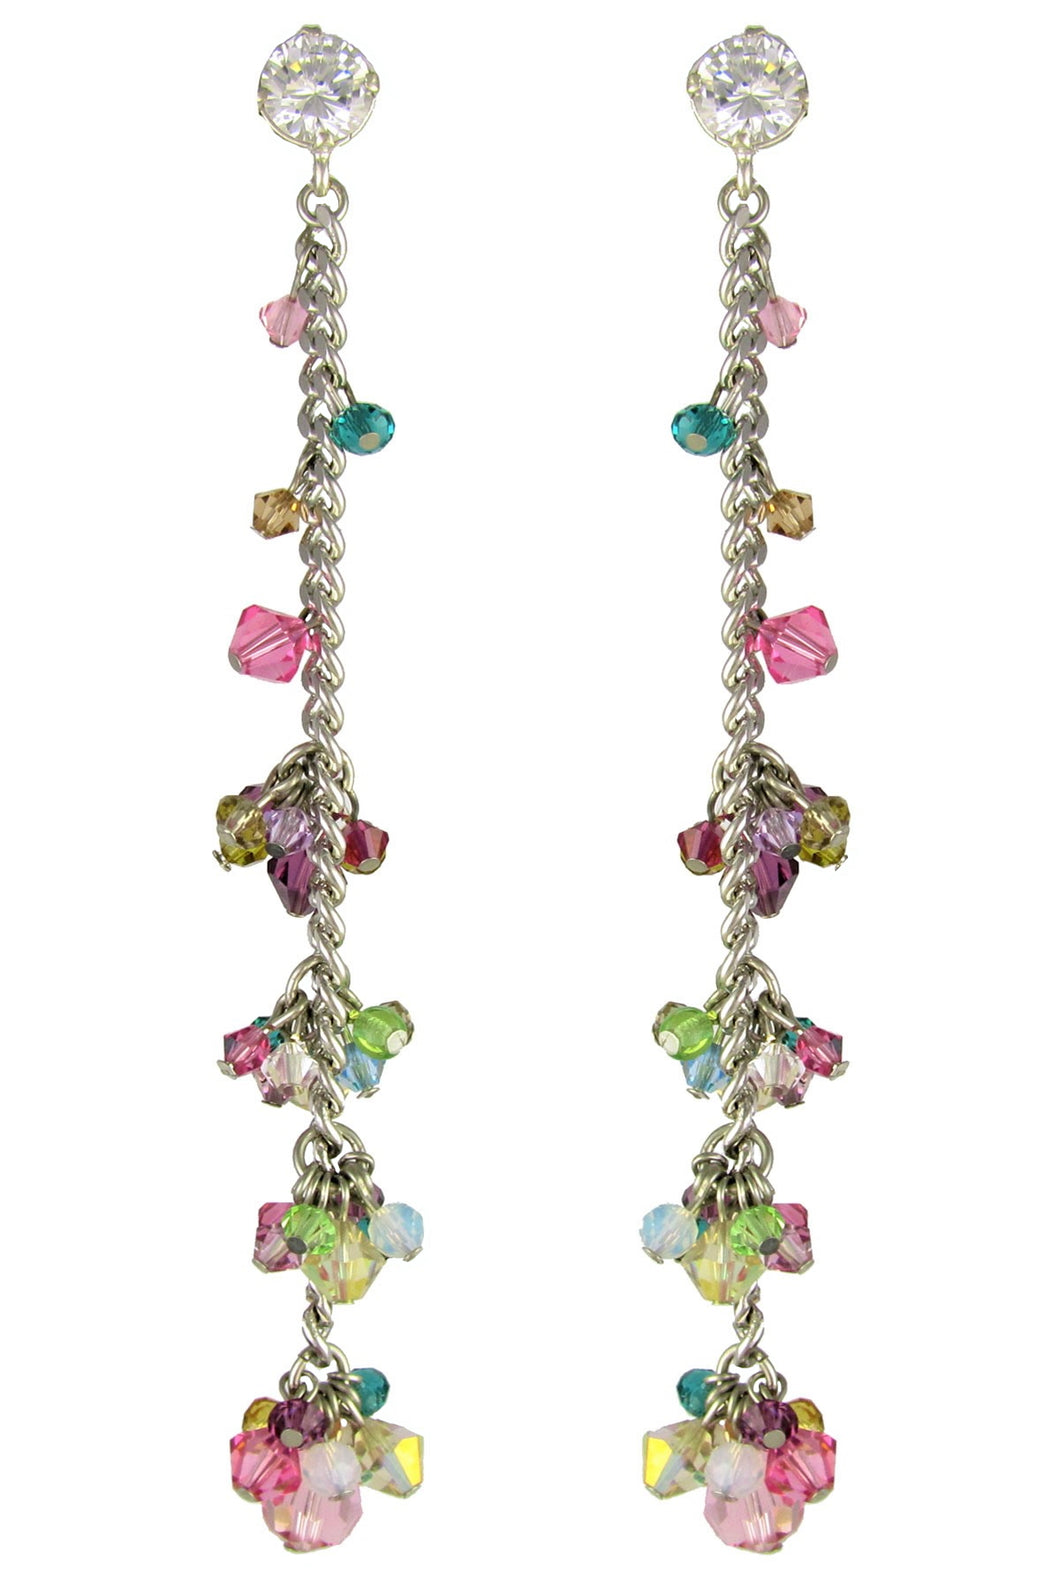 SALE - Anita Swarovski Crystals Earrings